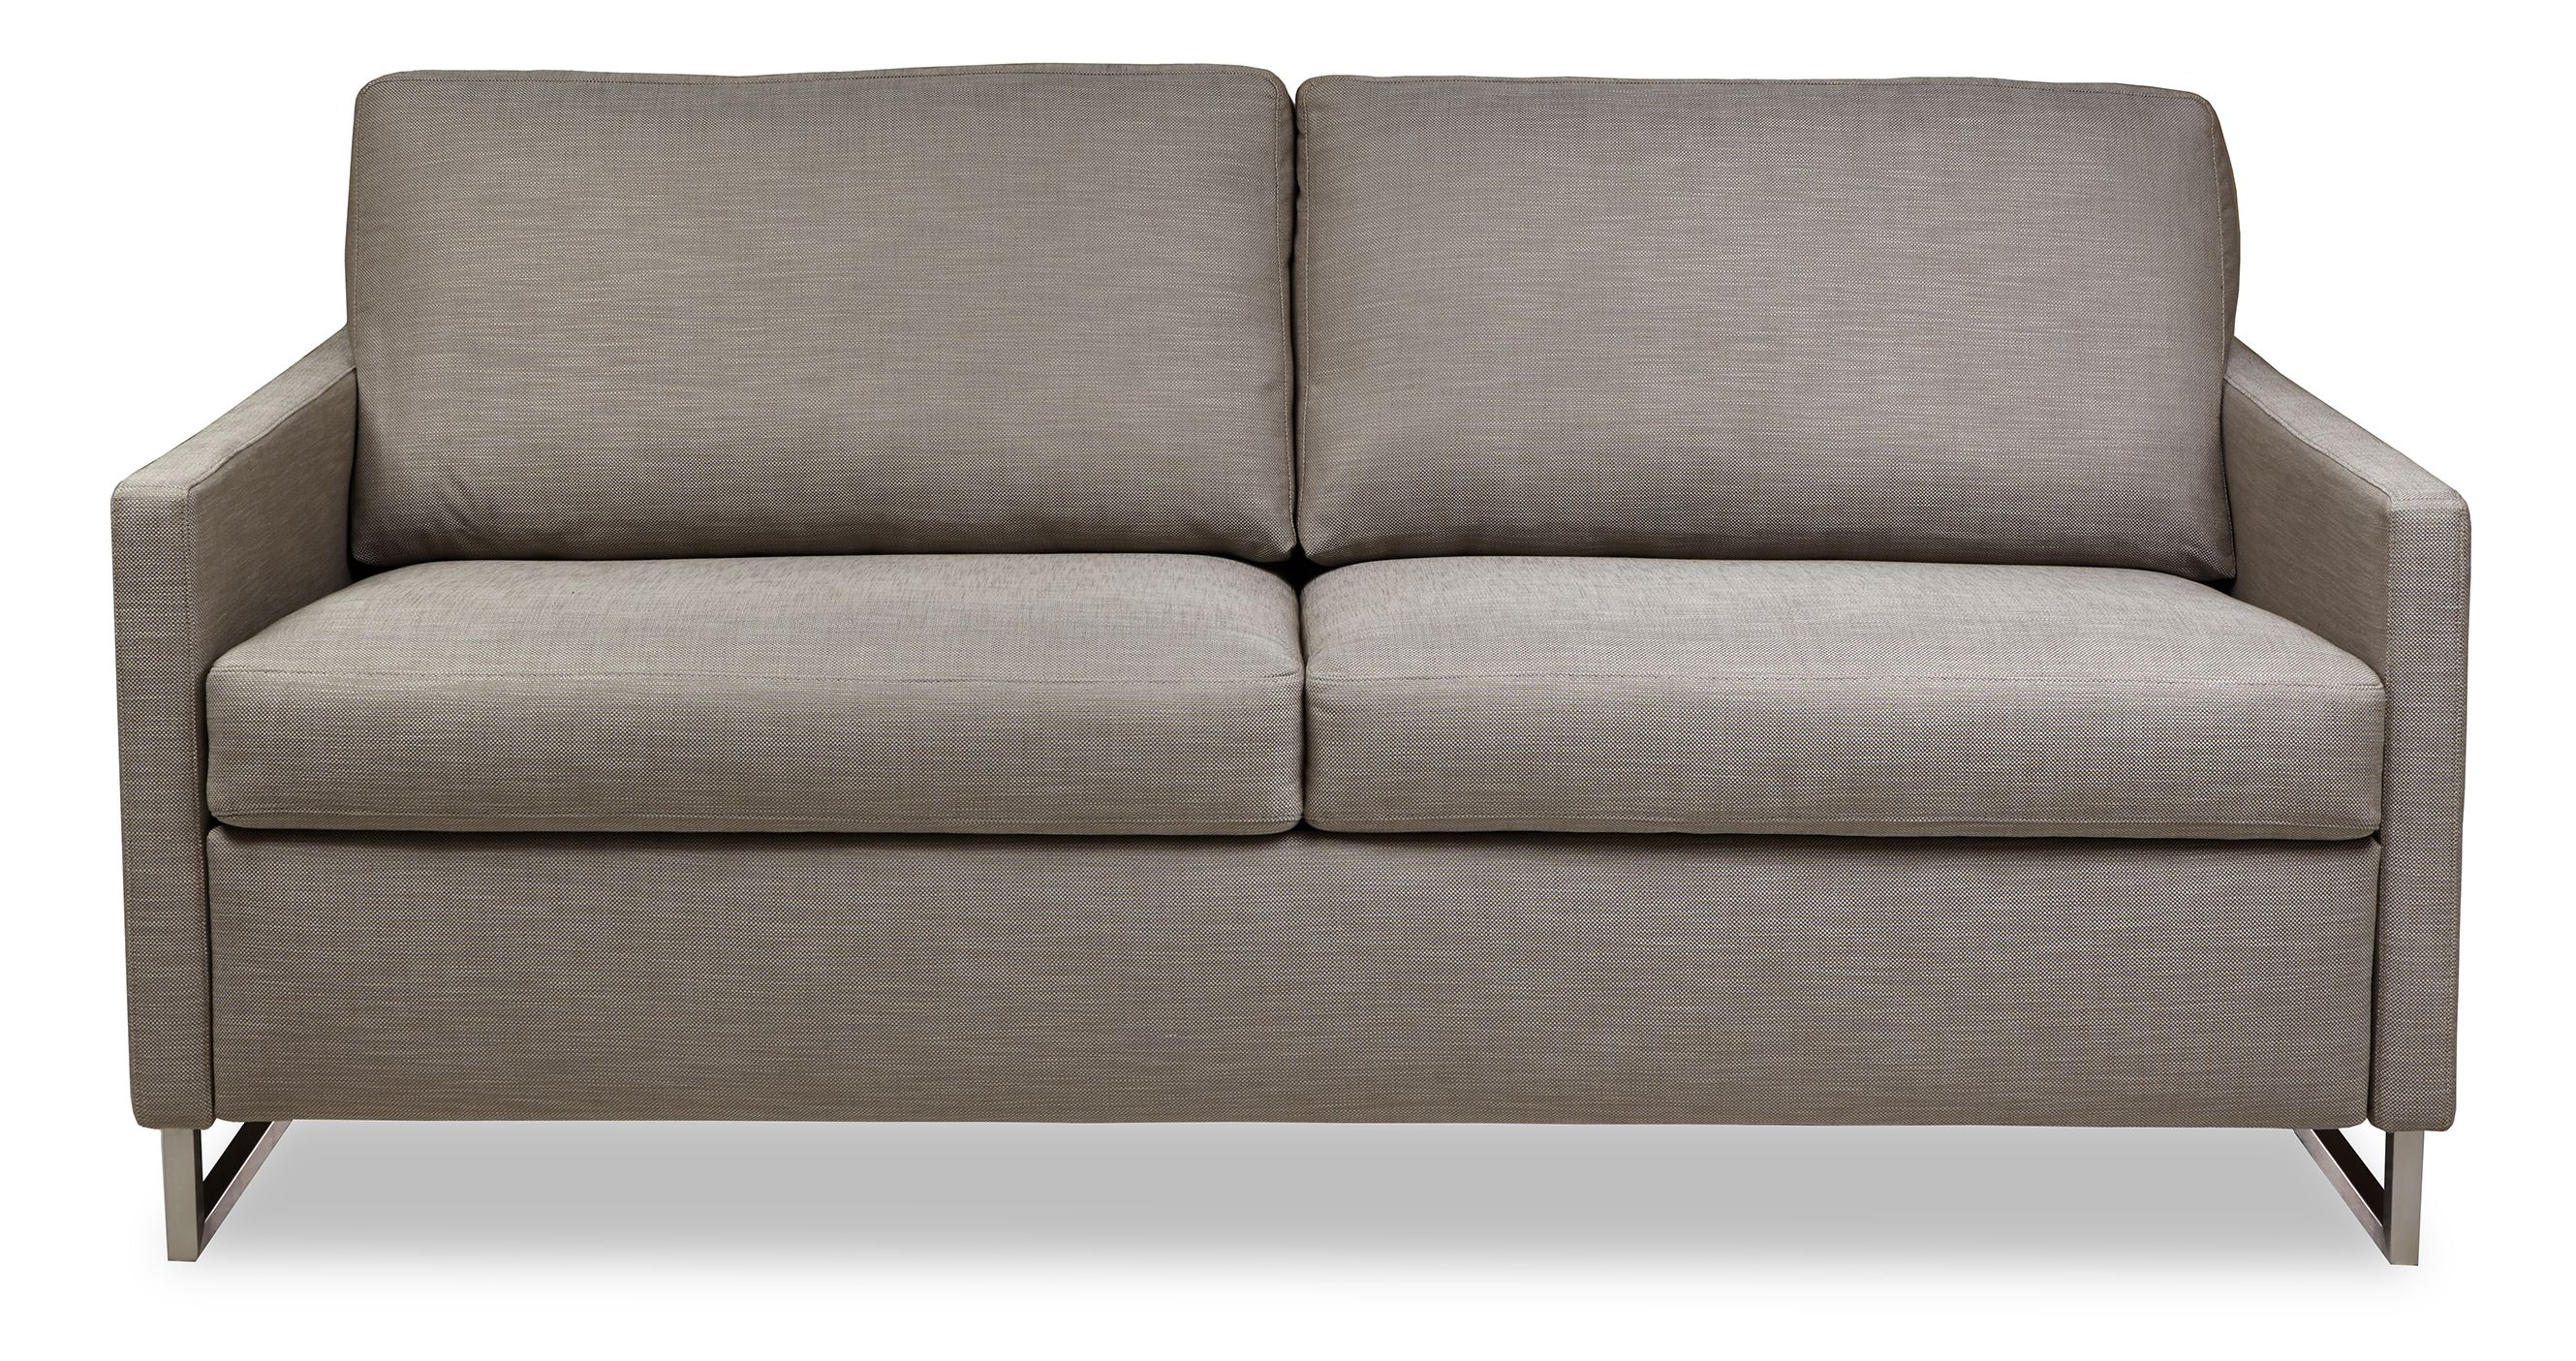 Jensen Lewis New York Modern And Contemporary Furniture Store  # Muebles Dutailier